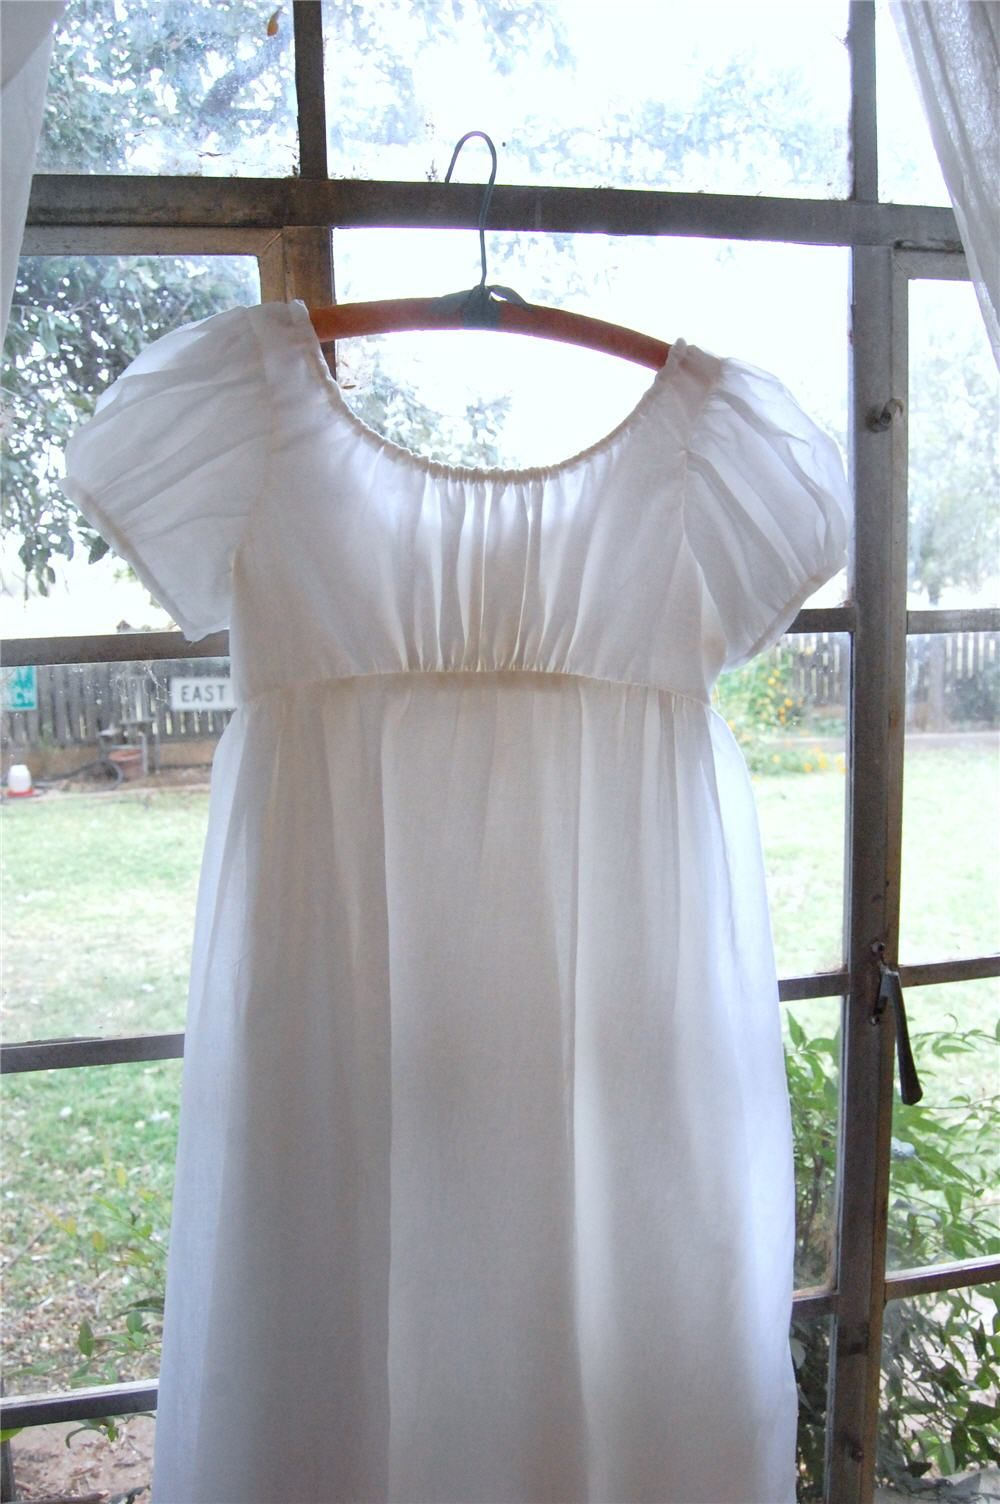 A white cotton voile regency drawstring dress for a year old girl